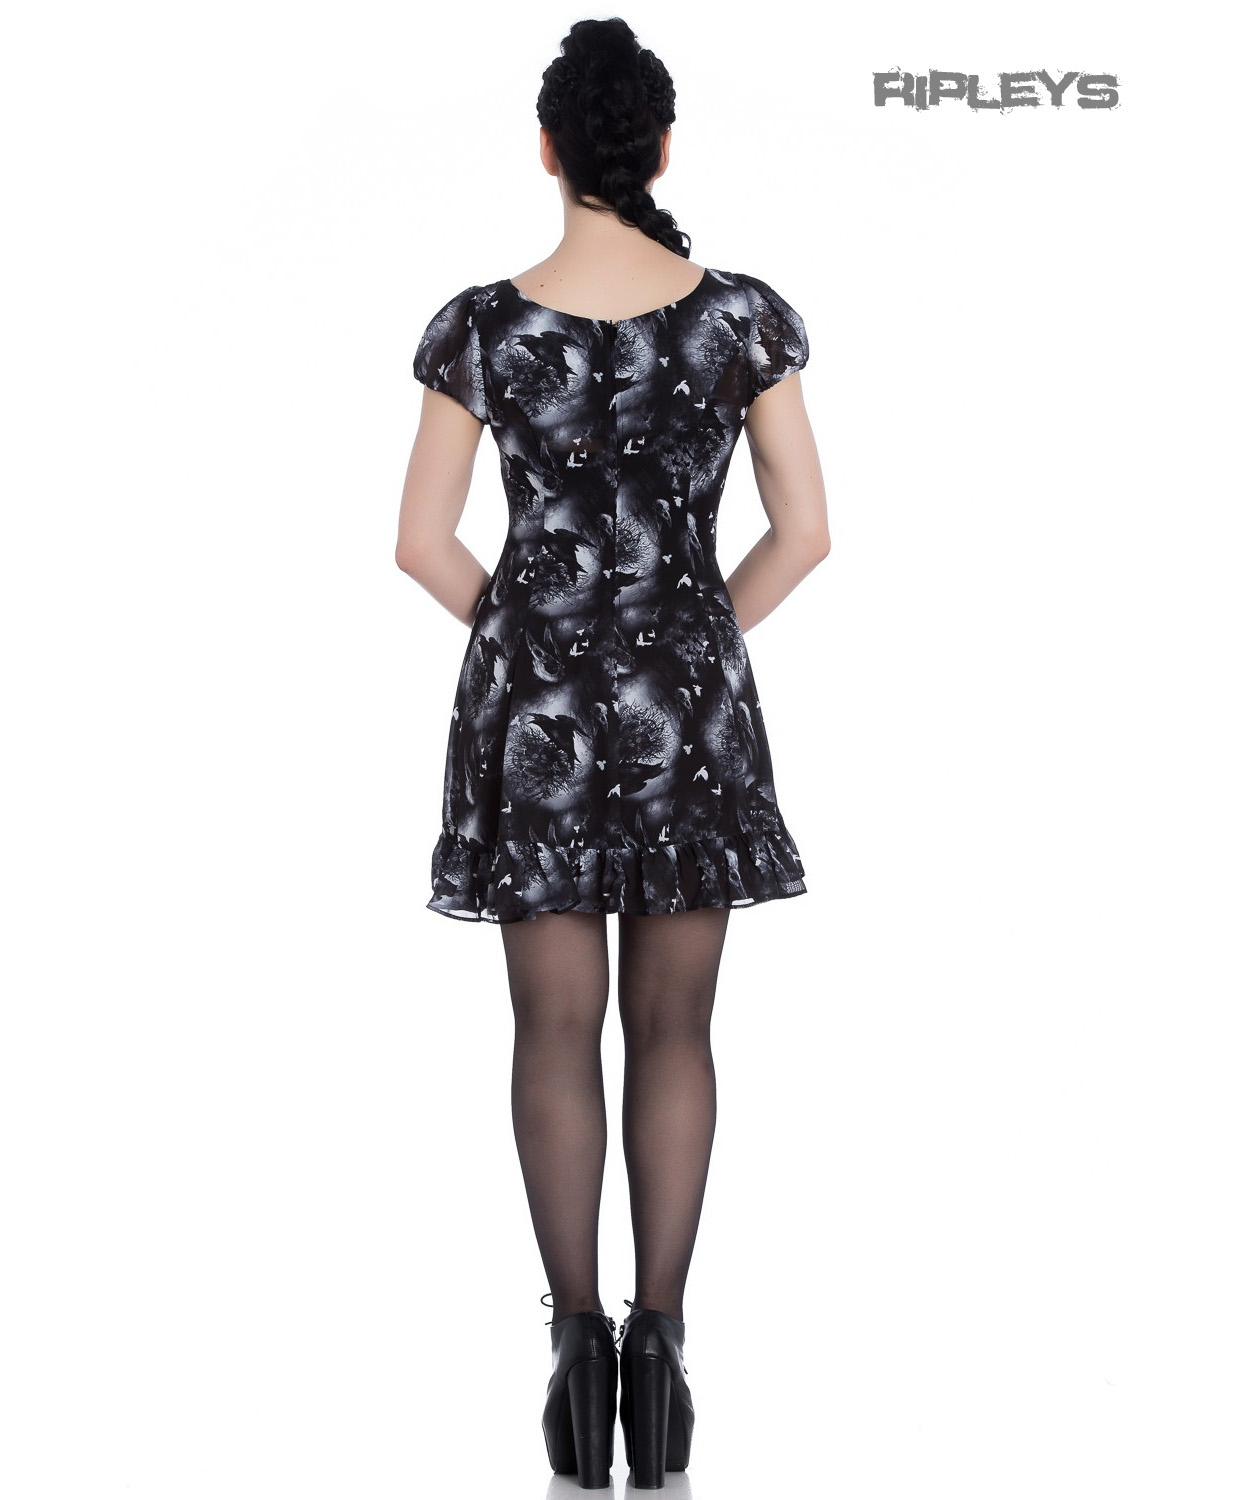 Hell-Bunny-Alchemy-Gothic-Black-Skater-Mini-Dress-ASH-Crows-Skulls-All-Sizes thumbnail 20